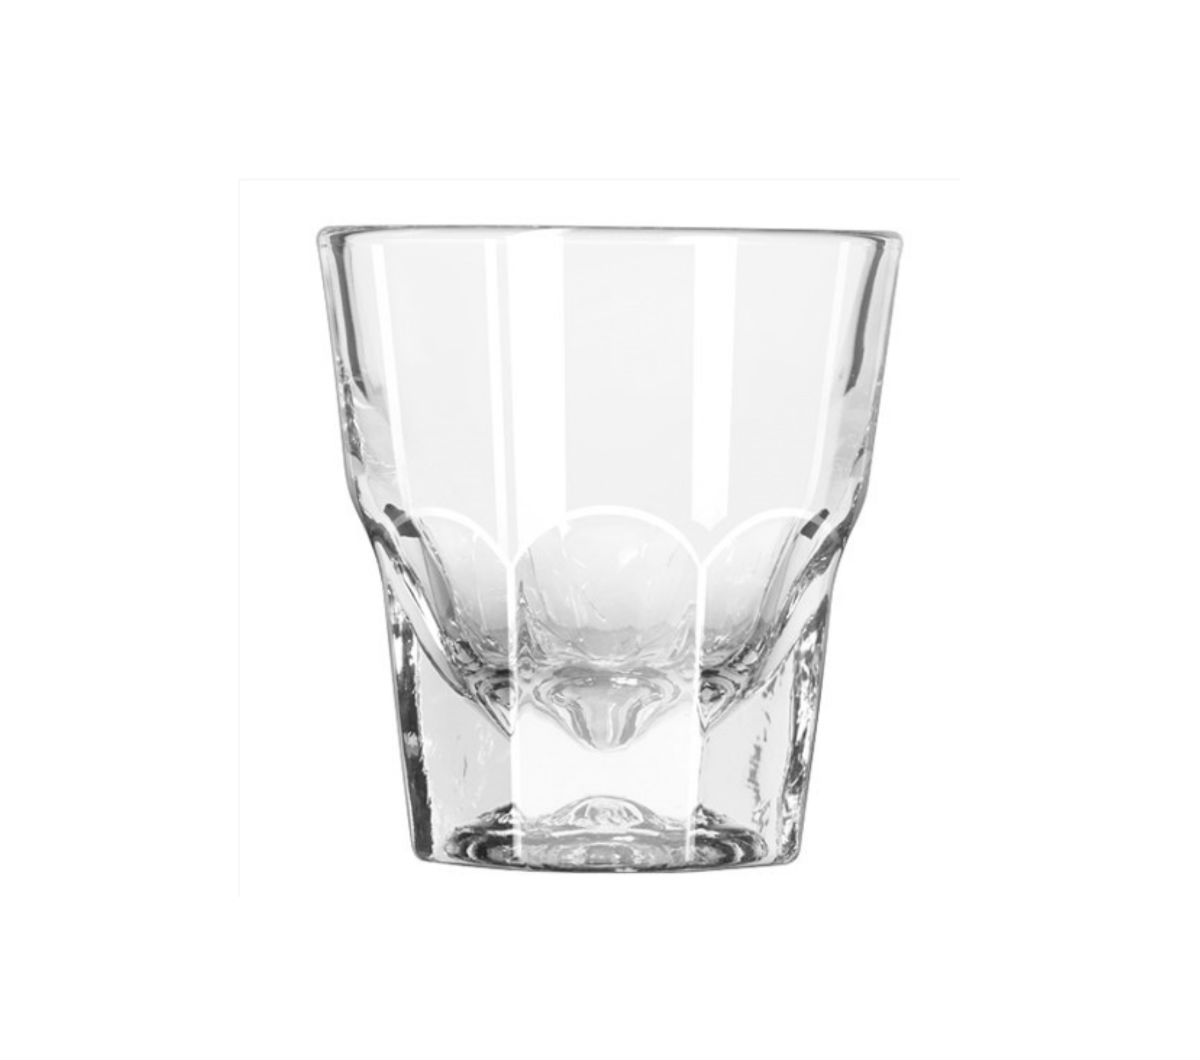 """GIBRALTAR"" Duratuff Tumbler 133ml / 4 1/2 oz (1PC)"